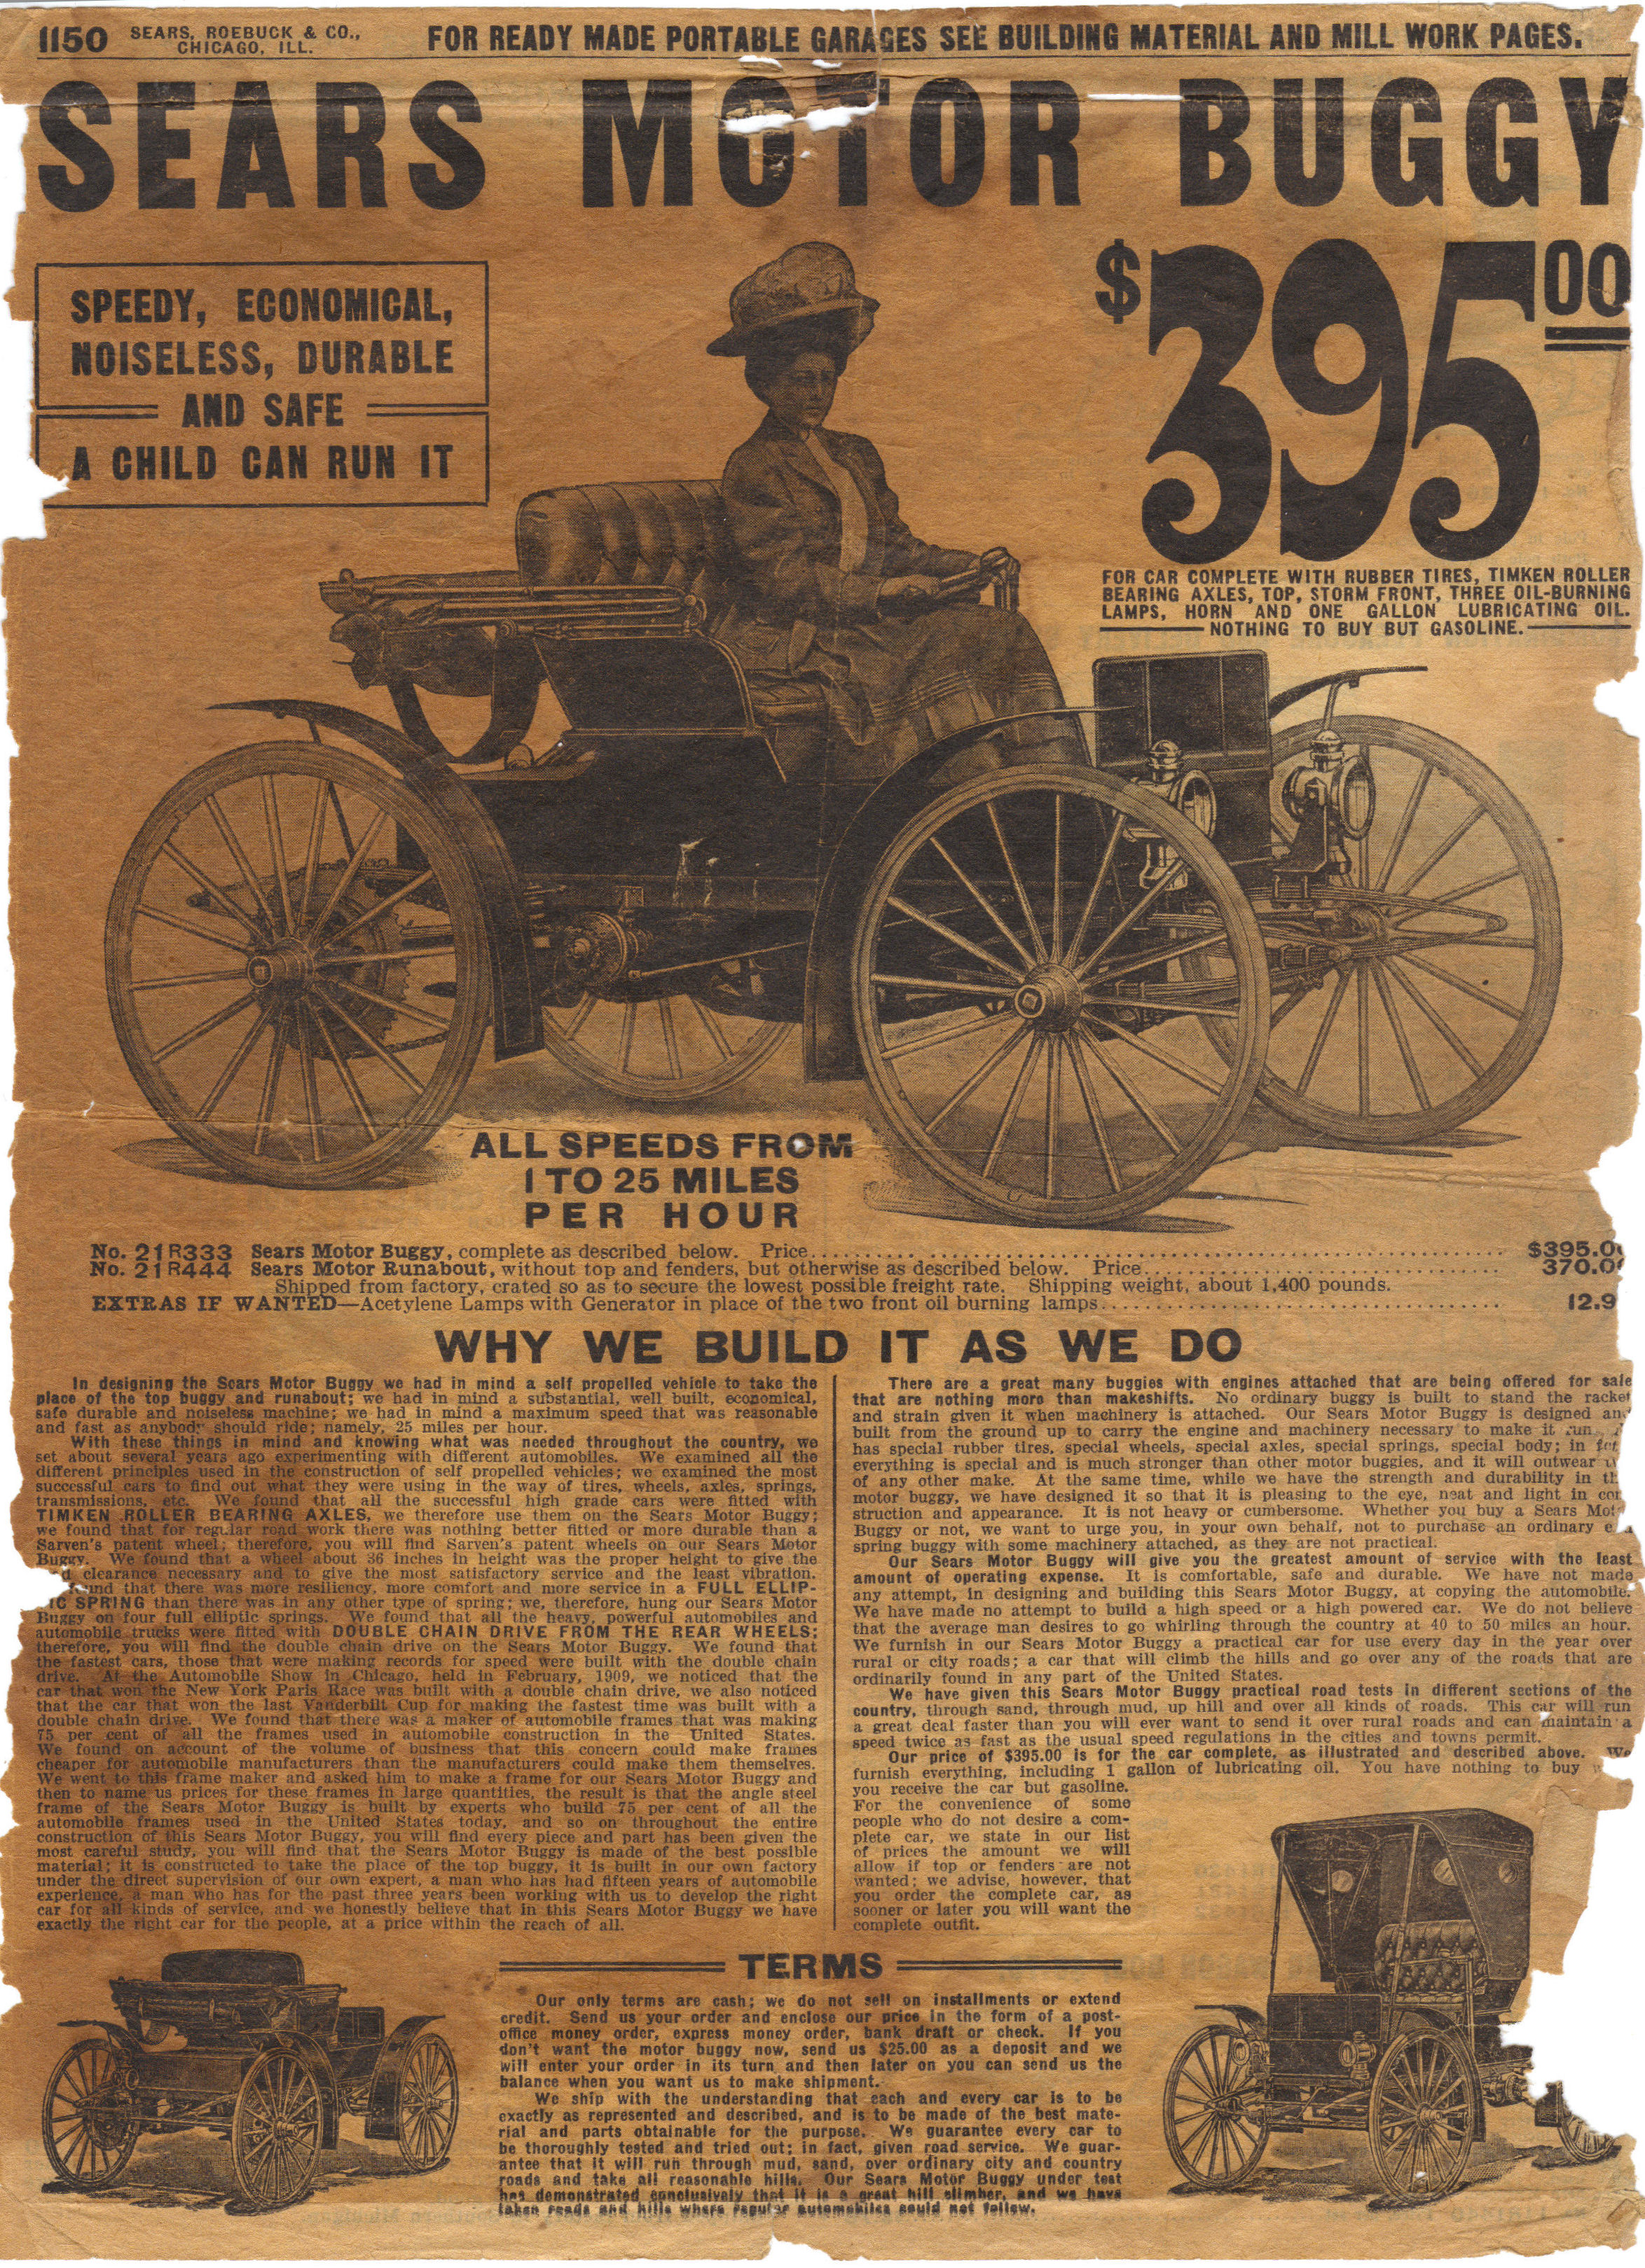 Sears Motor Buggy Homepage - Sears History